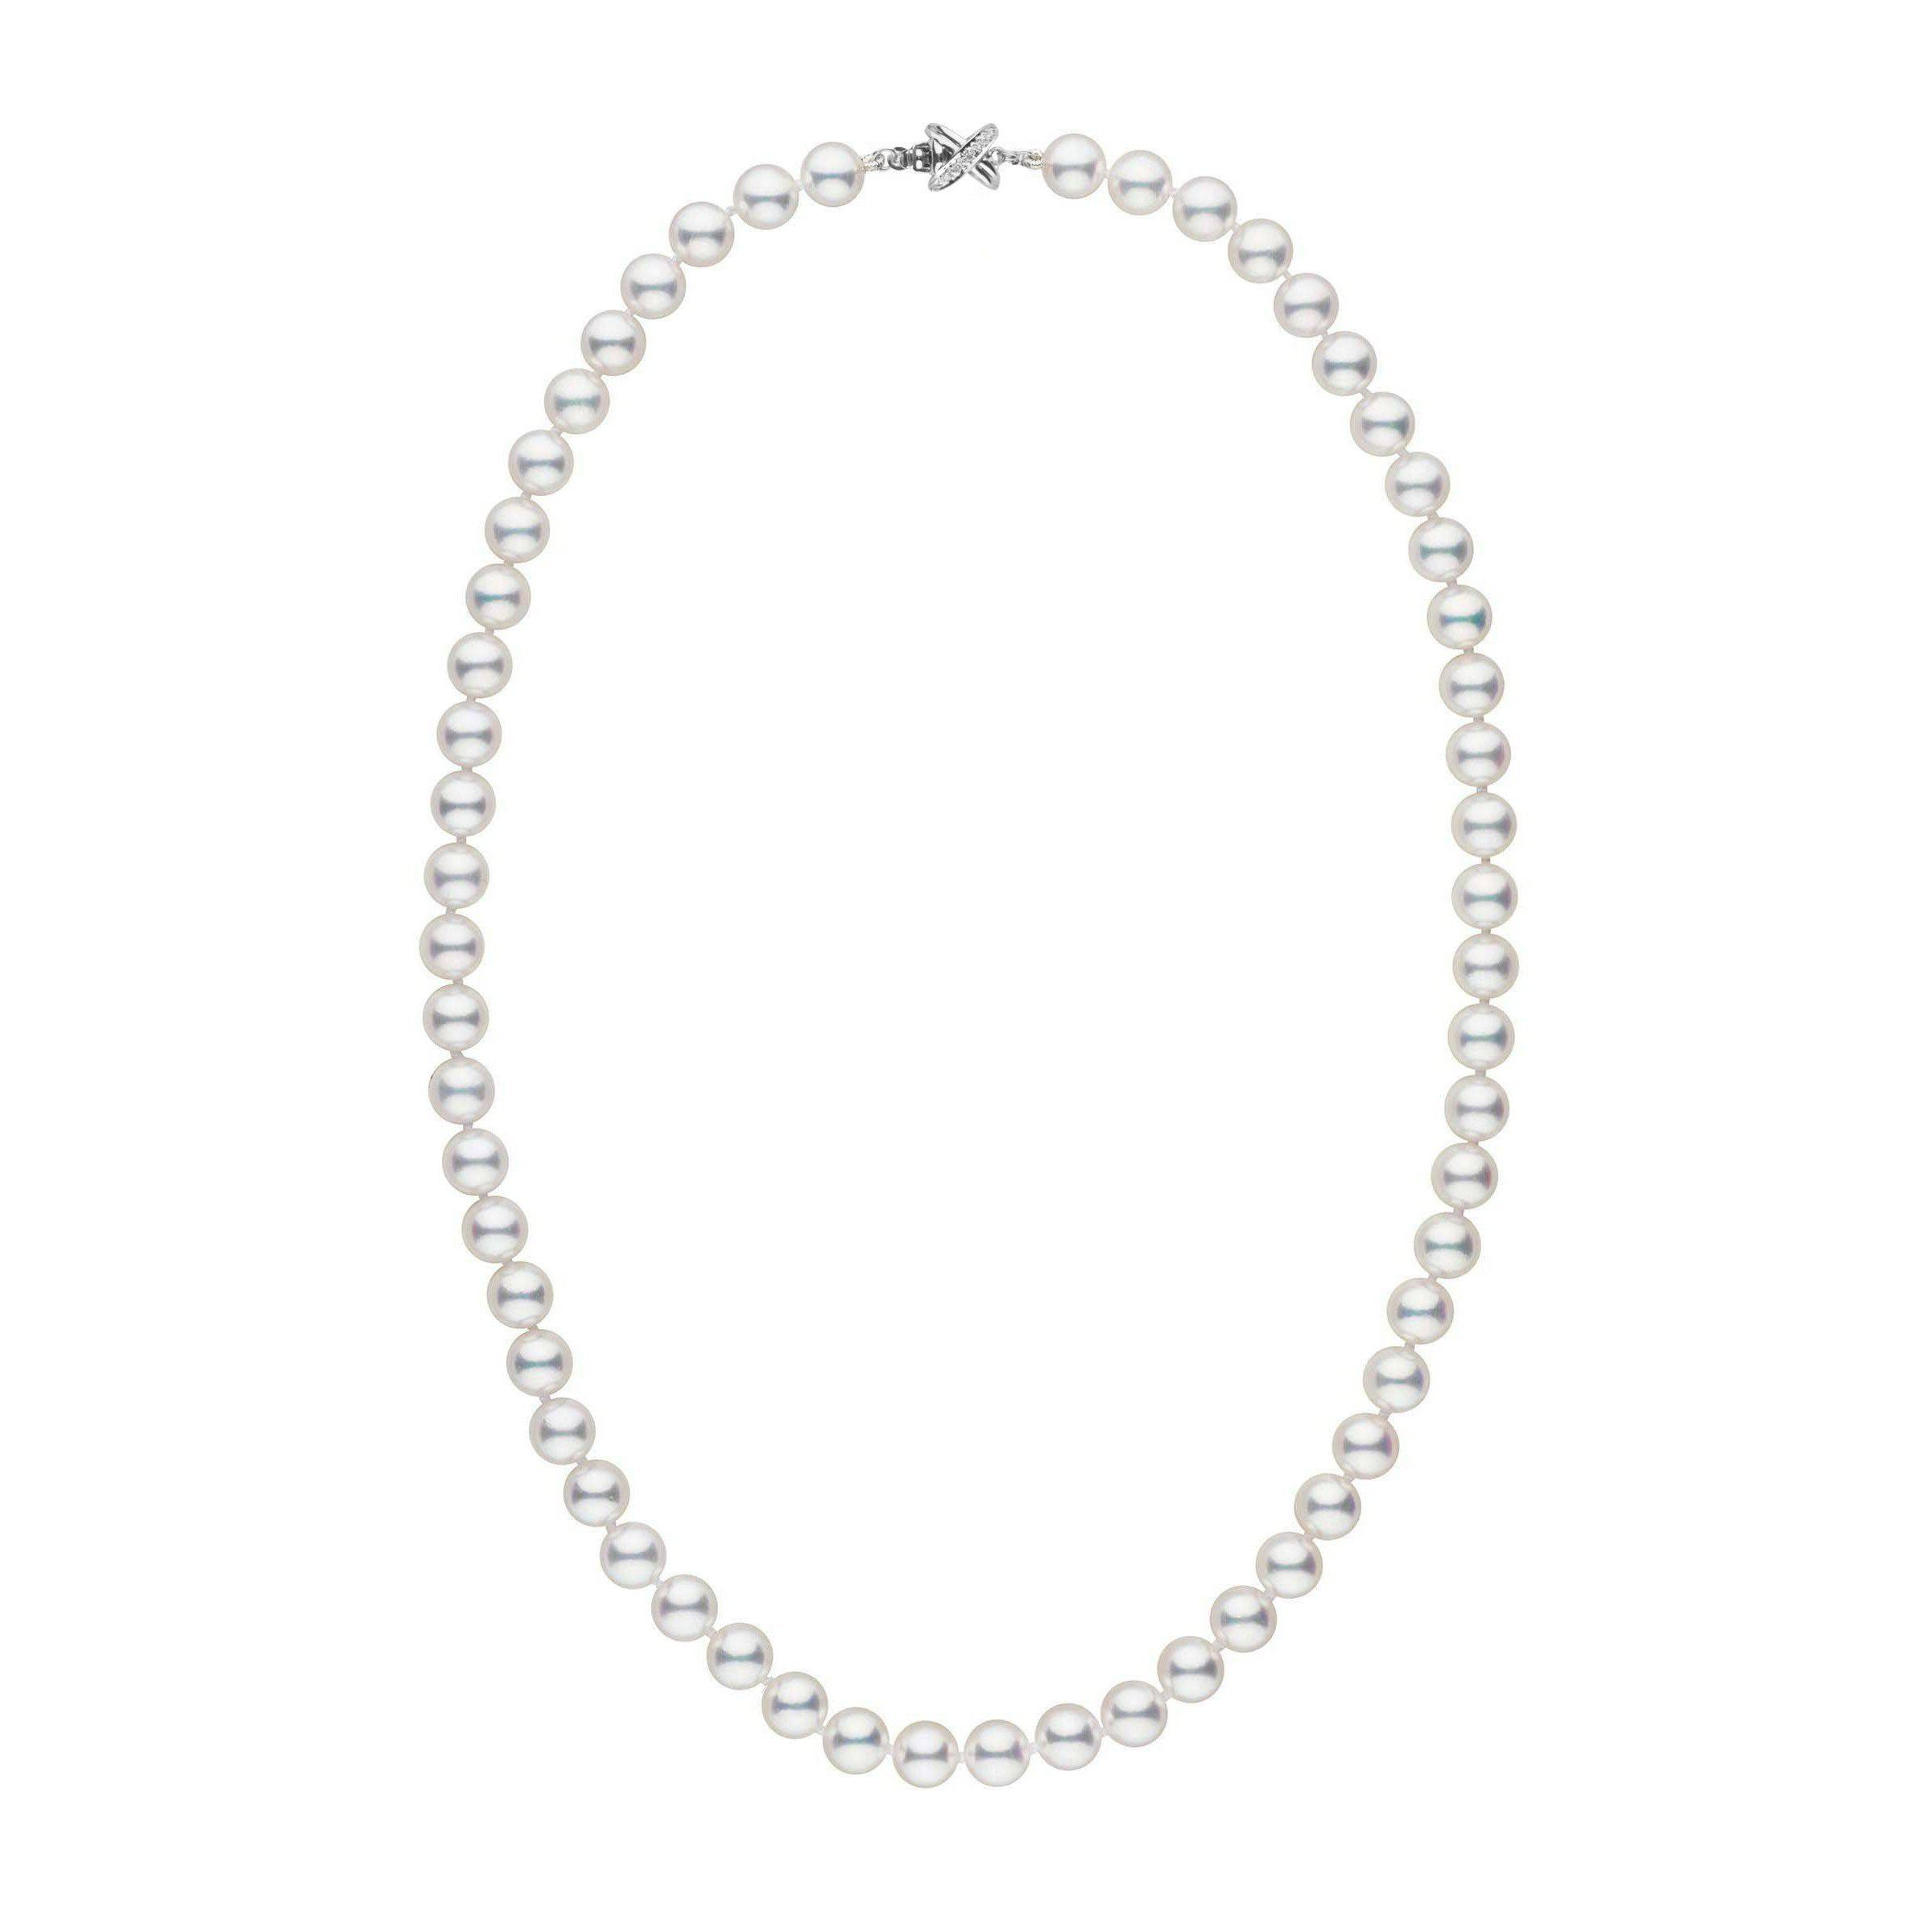 7.0-7.5 mm White AAA Akoya 18 inch Pearl Necklace with Diamond X Clasp